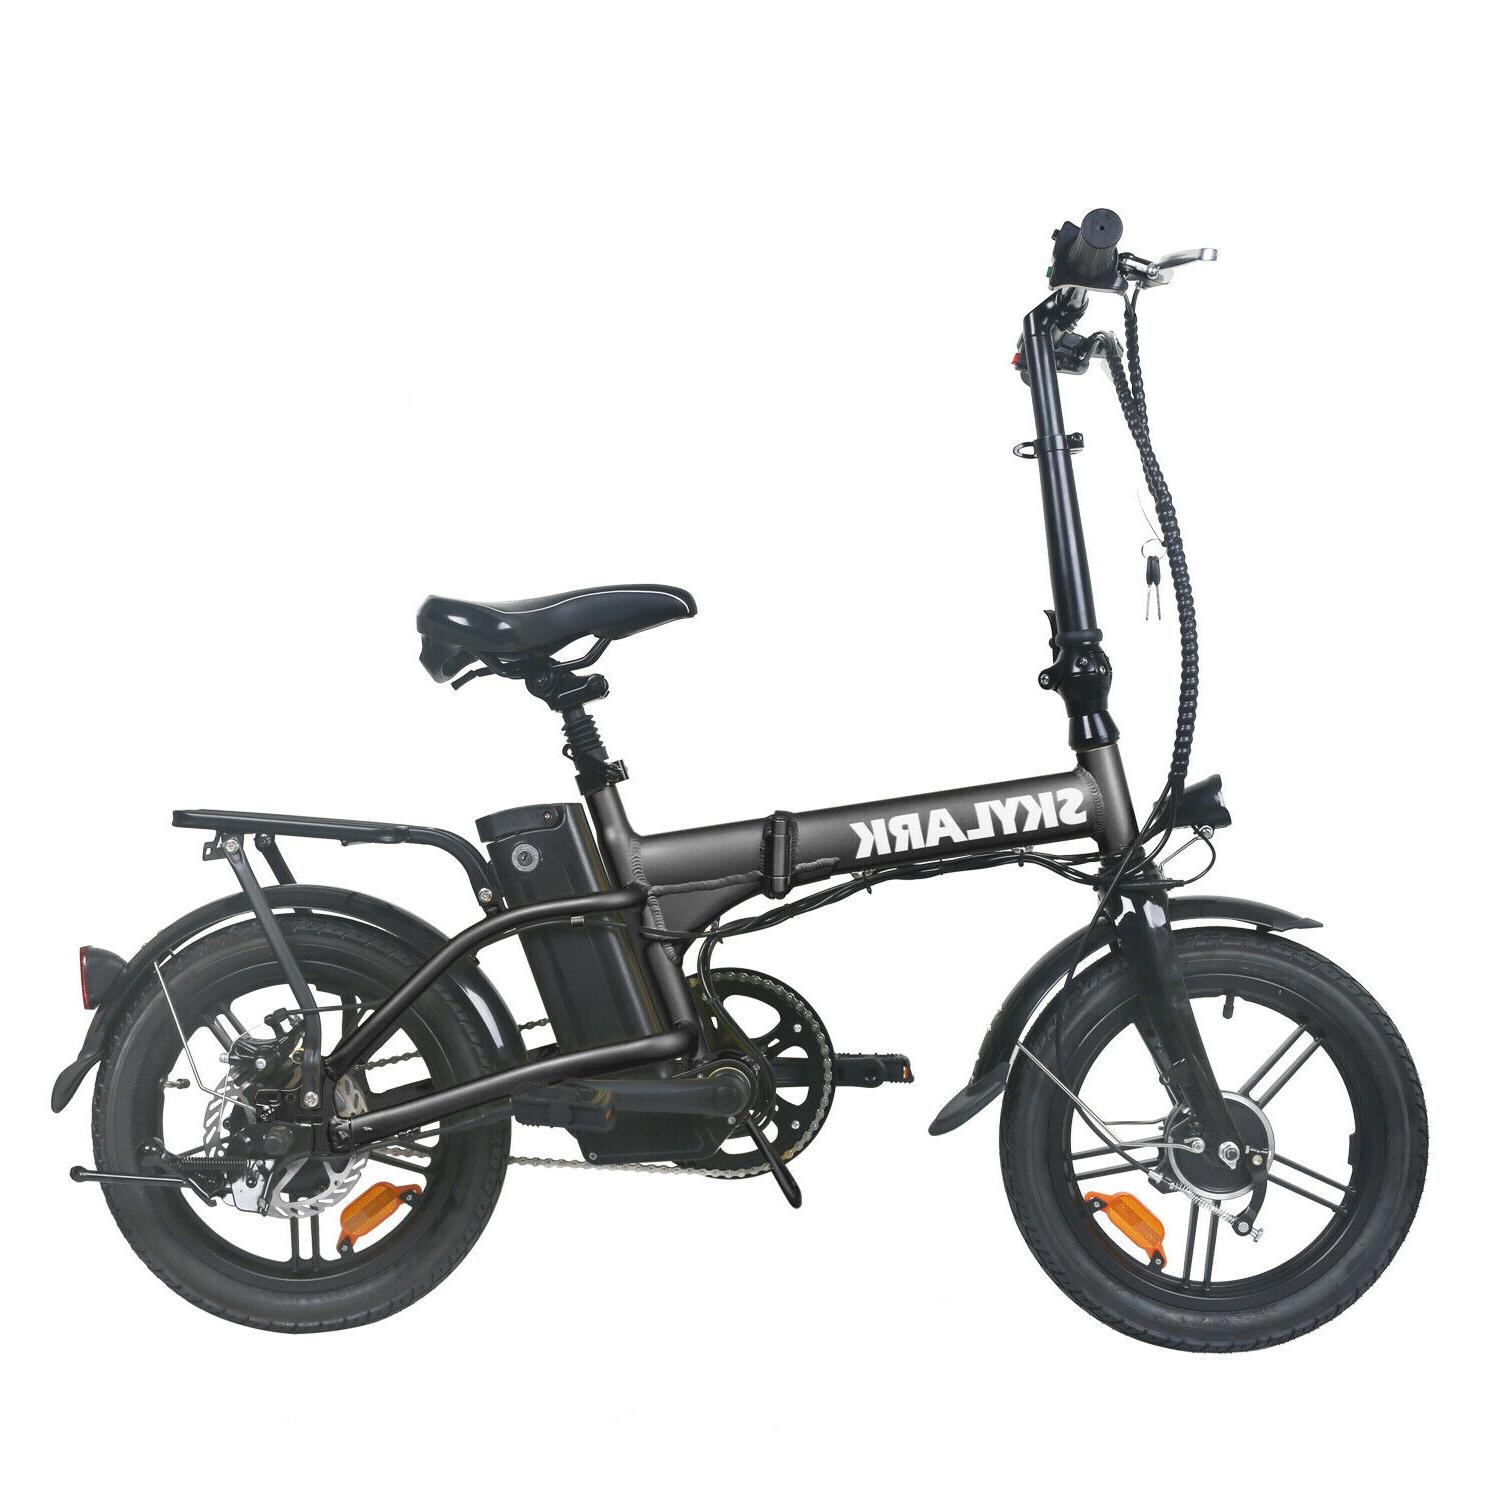 NAKTO Bike 250W 10Ah Moped Bicycle